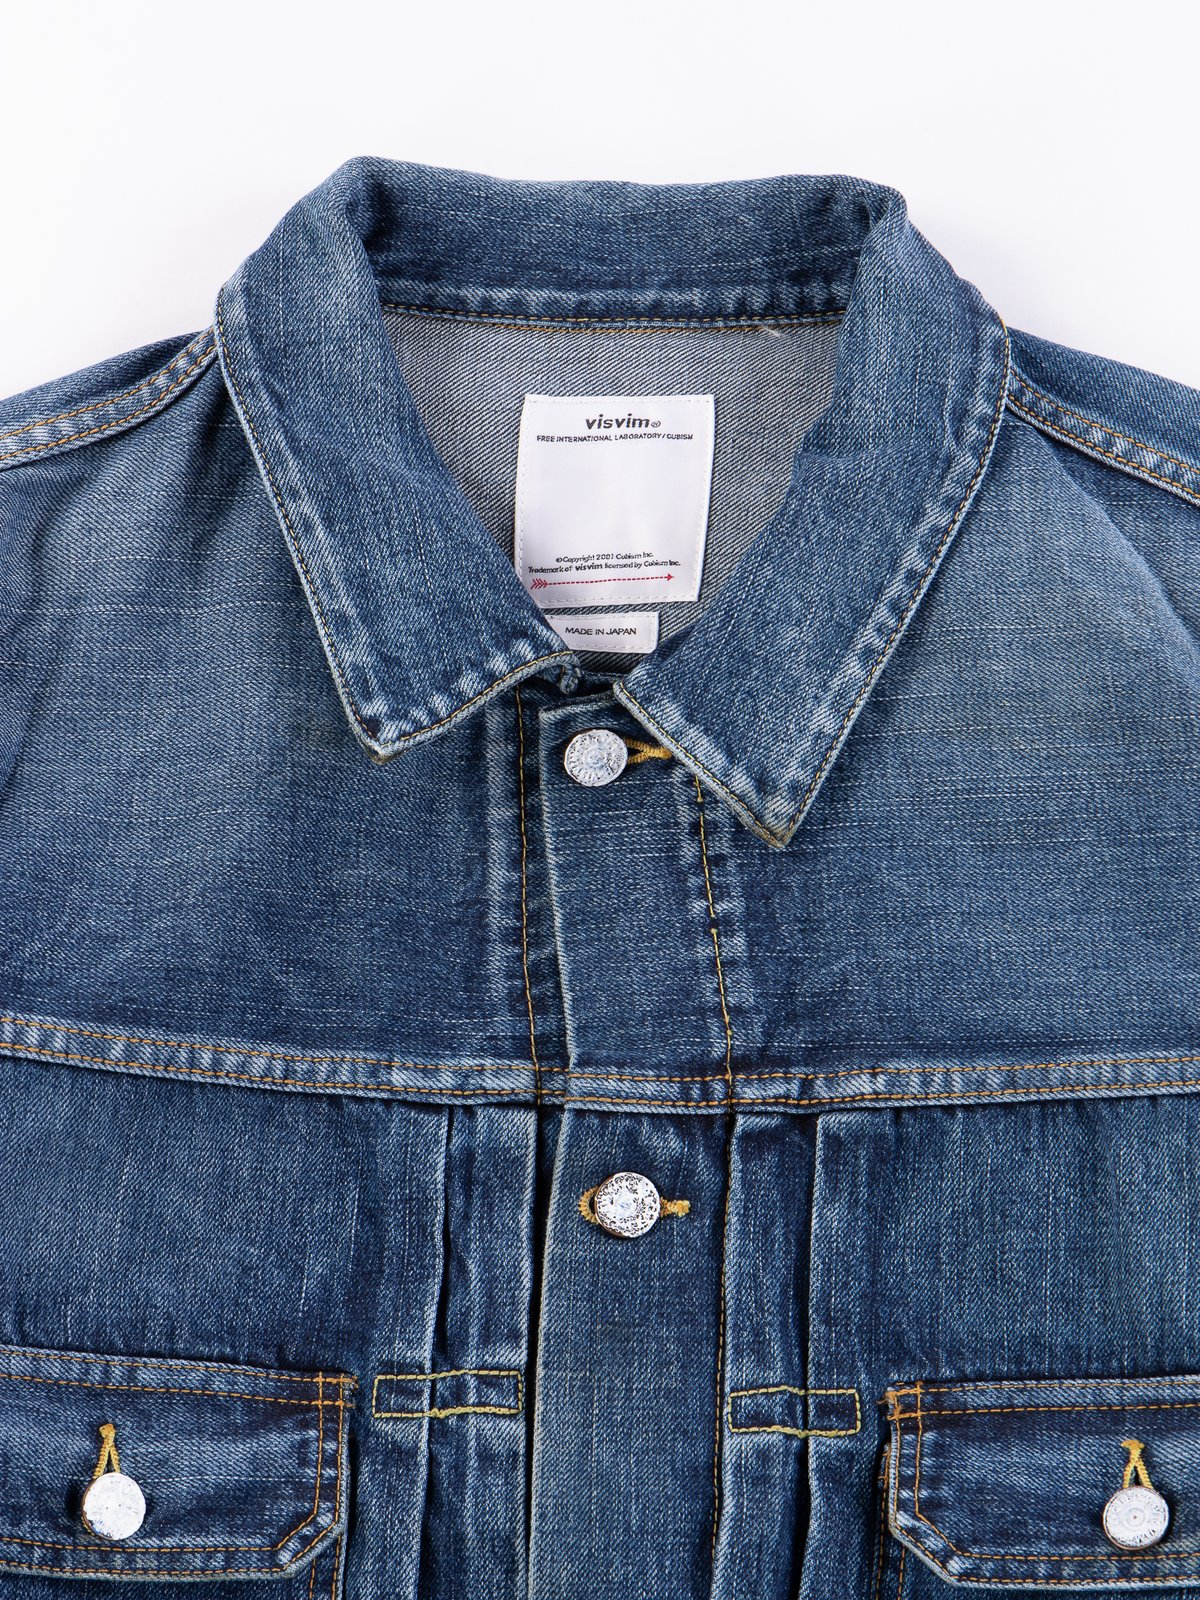 Dry Damaged SS 101 Denim Jacket - Image 3